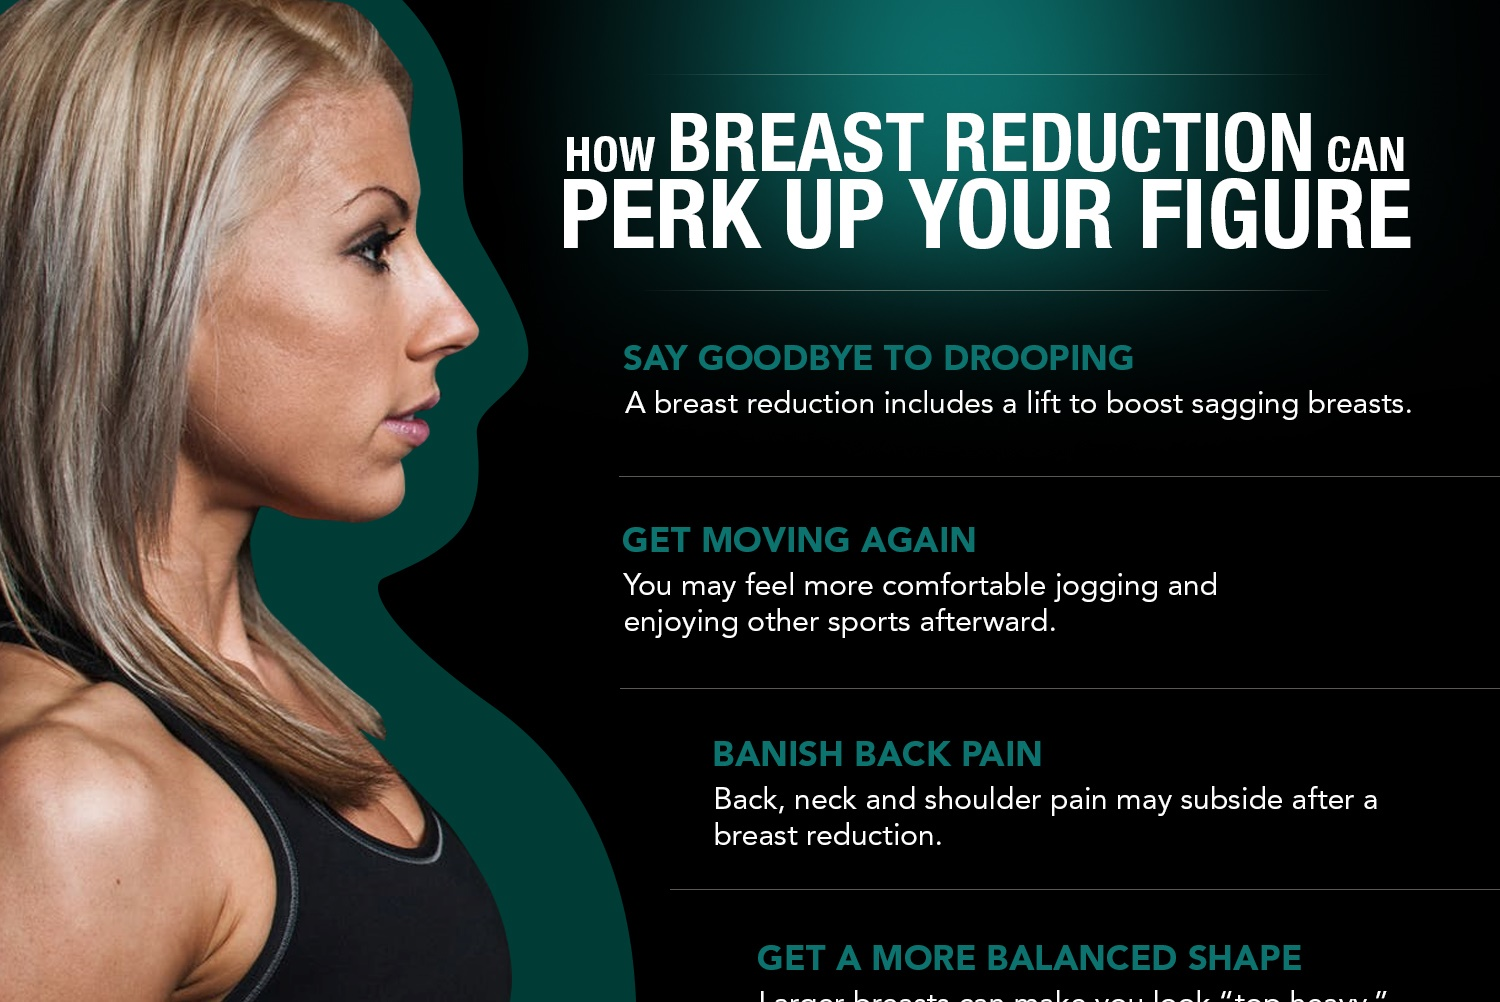 How Breast Reduction Can Perk Up Your Figure [Infographic]